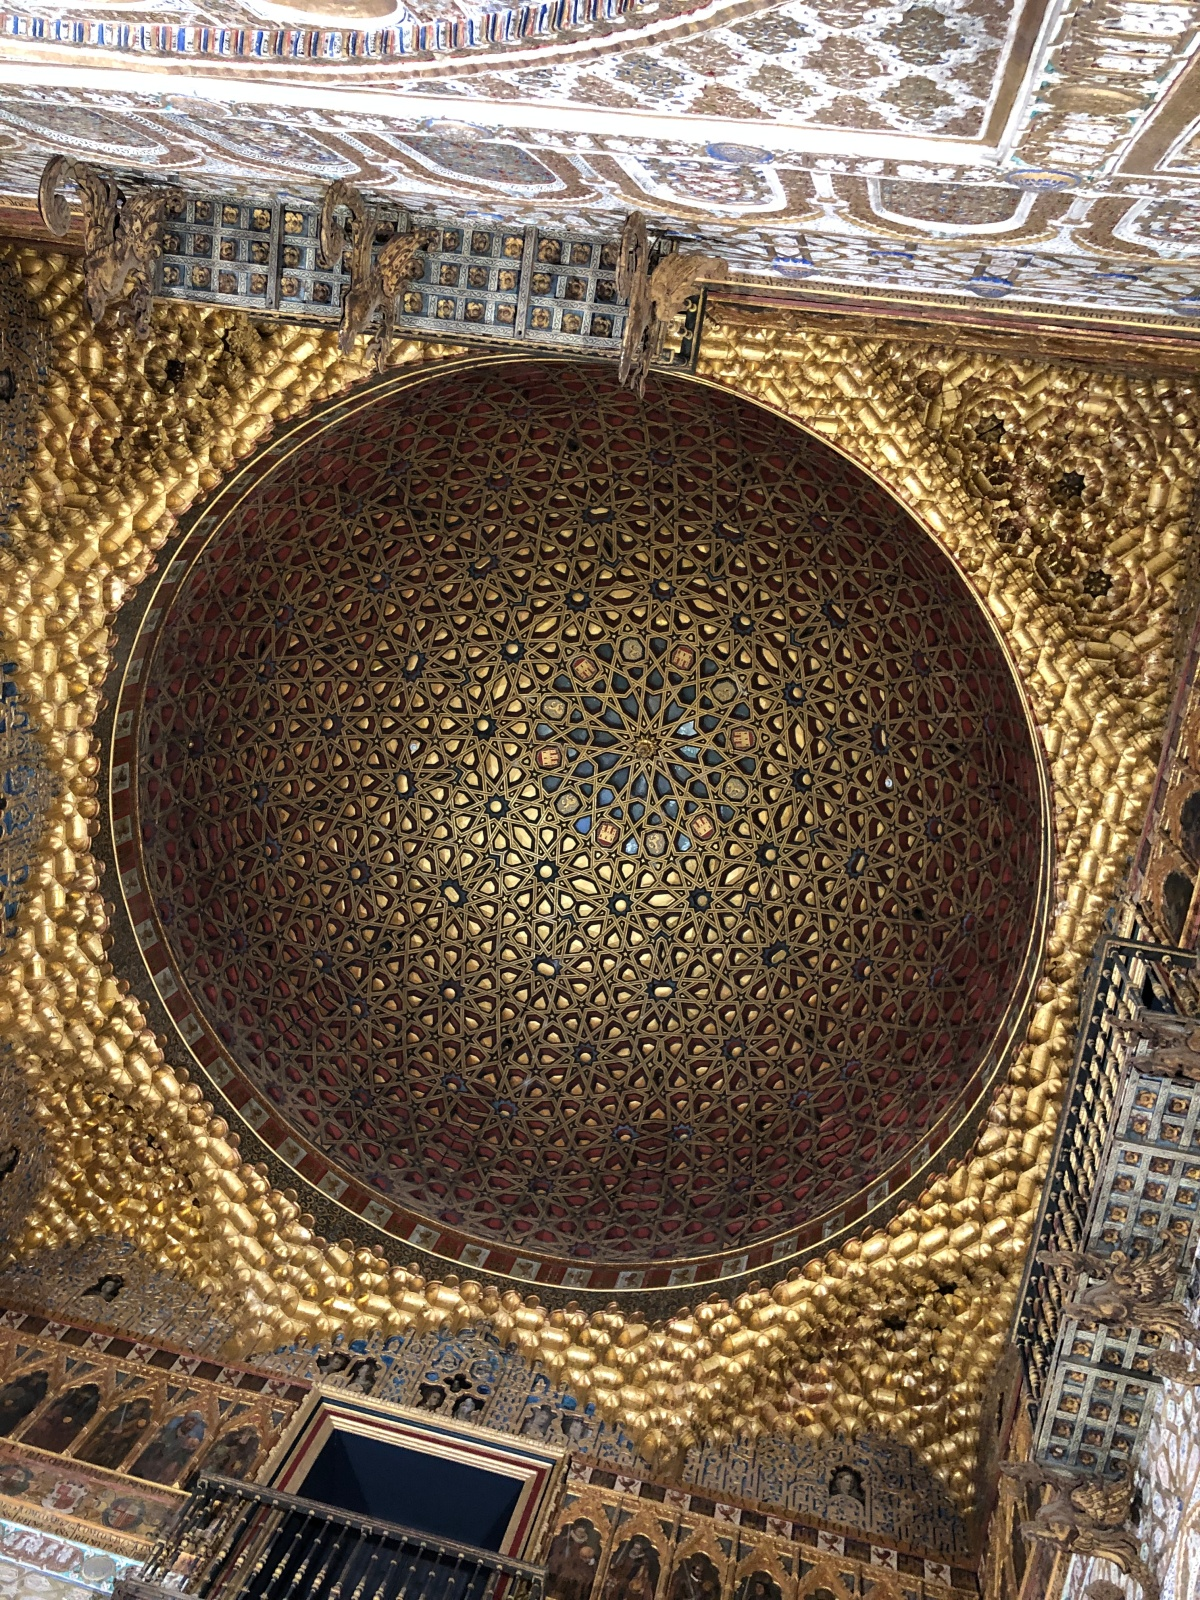 Orientalism And the Middle Ages: Islamic Palaces In The Eyes Of The Crusaders